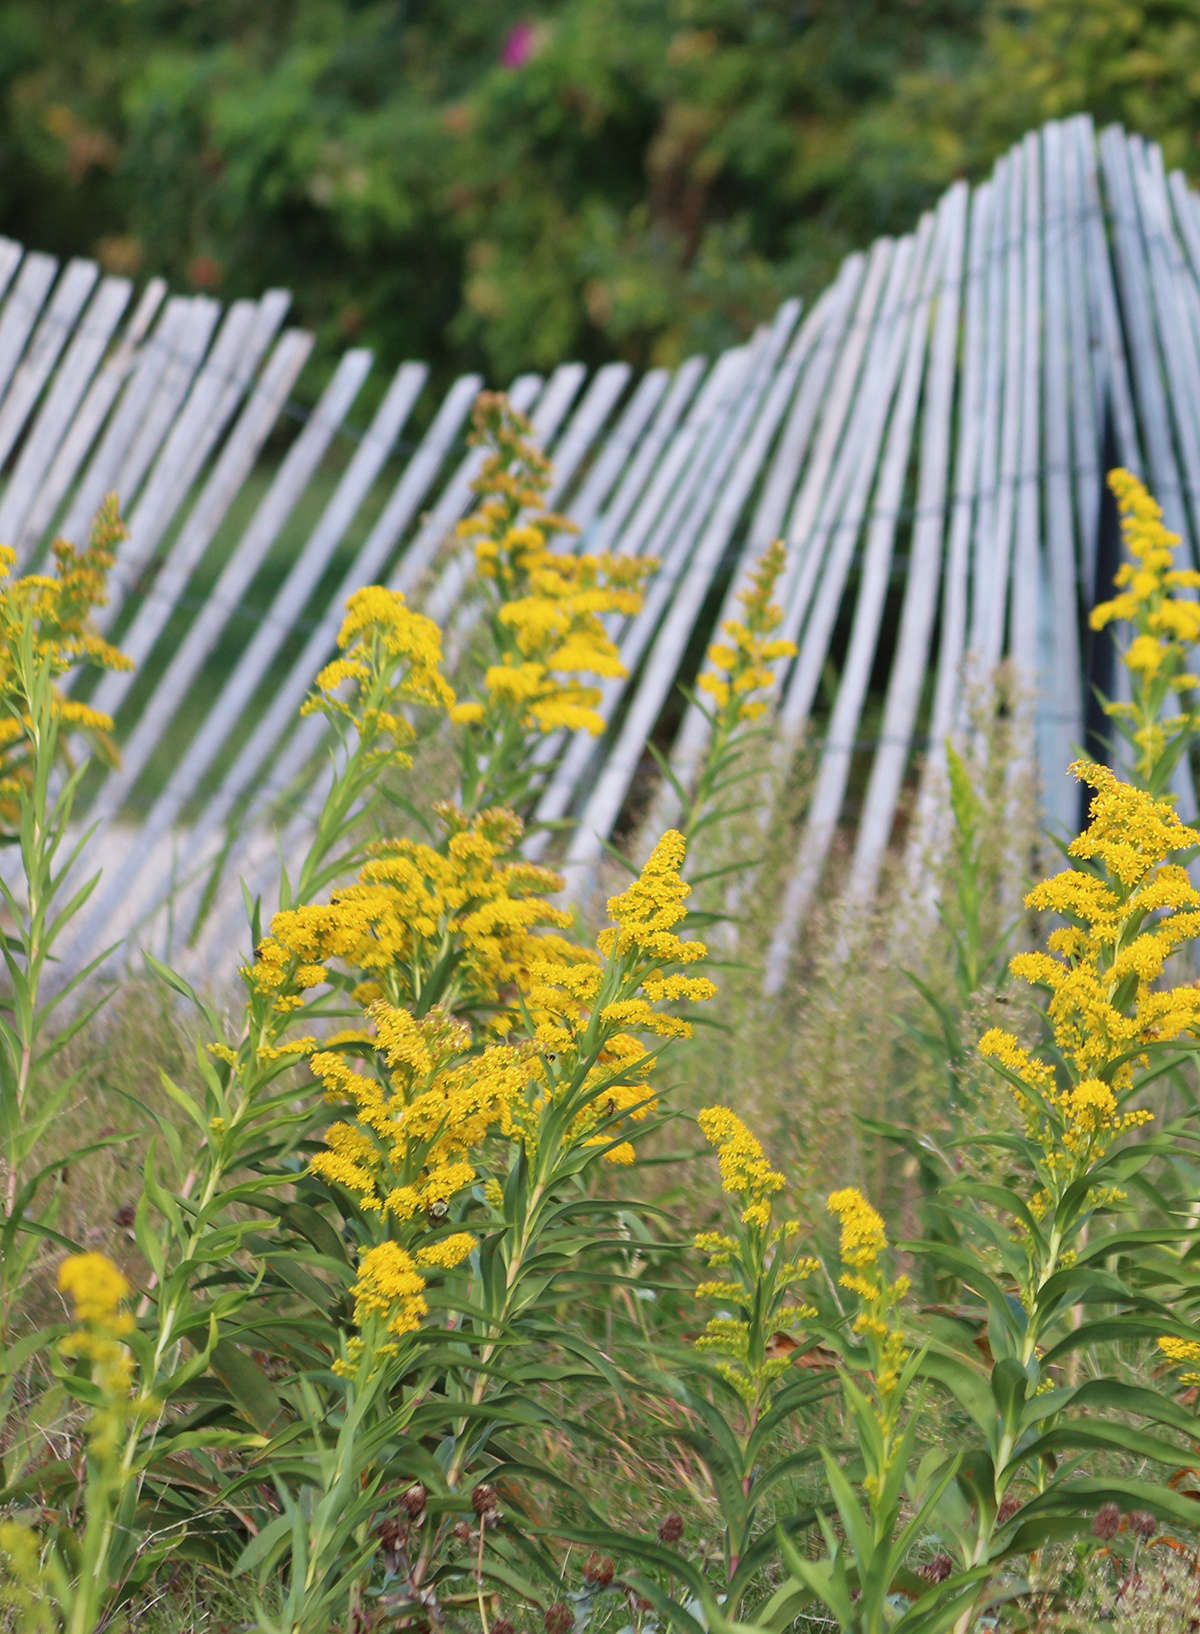 I have had more than one tense conversation with someone who is absolutely convinced that goldenrod is ragweed (Ambrosia species) or that it causes seasonal allergies.